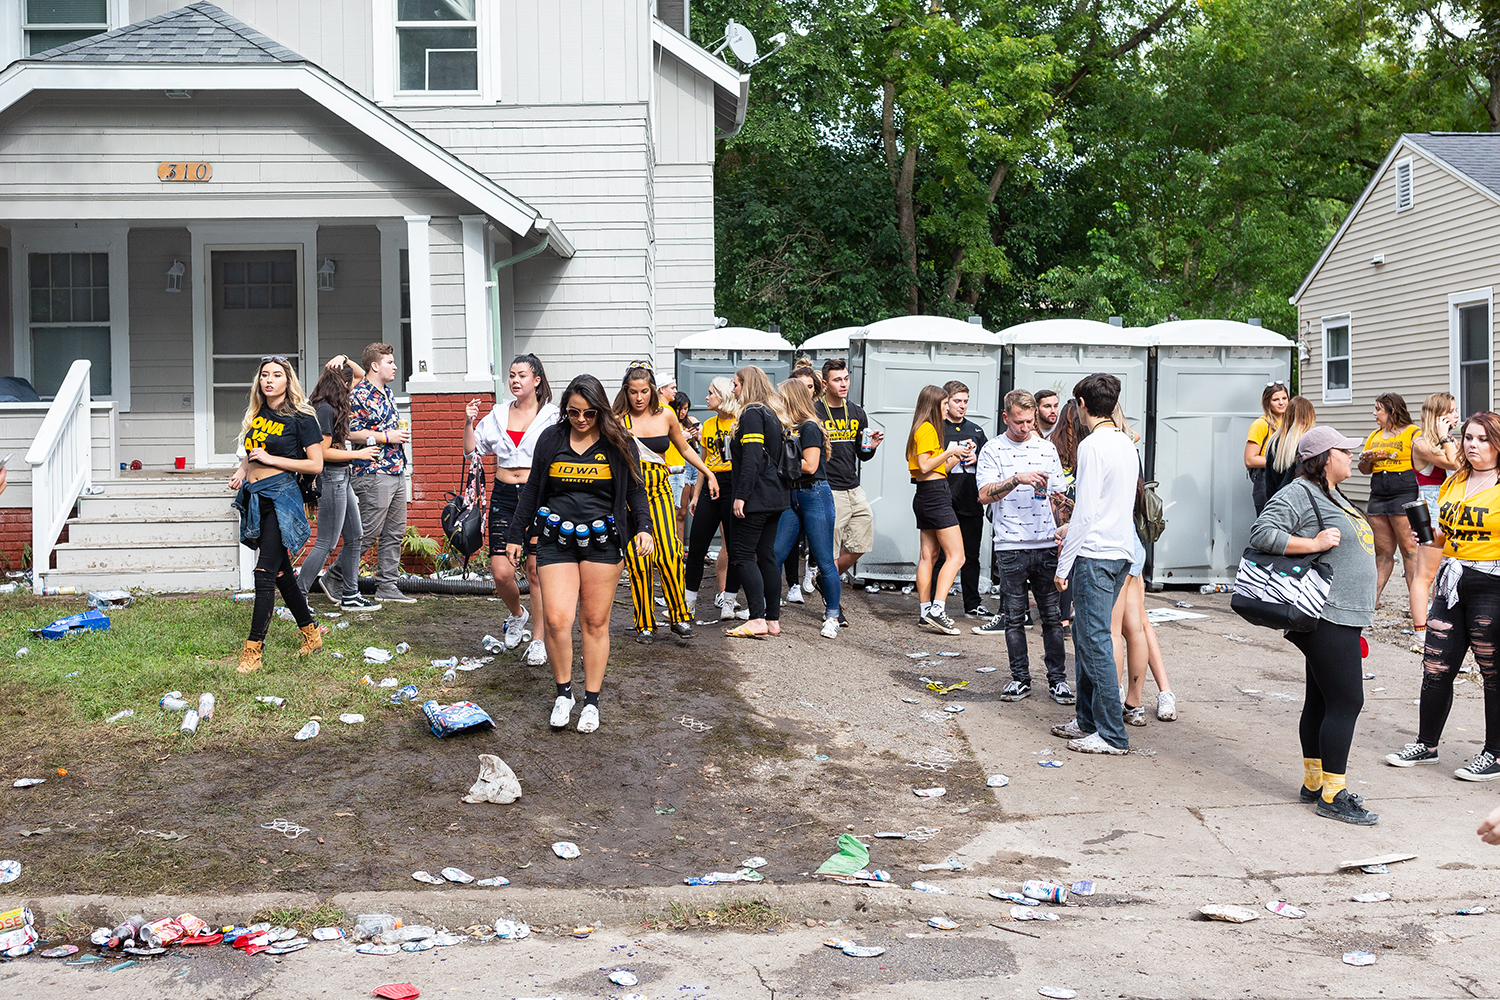 Tailgaters walk out of a party before a football game against Iowa State University on Saturday, Sept. 8, 2018.